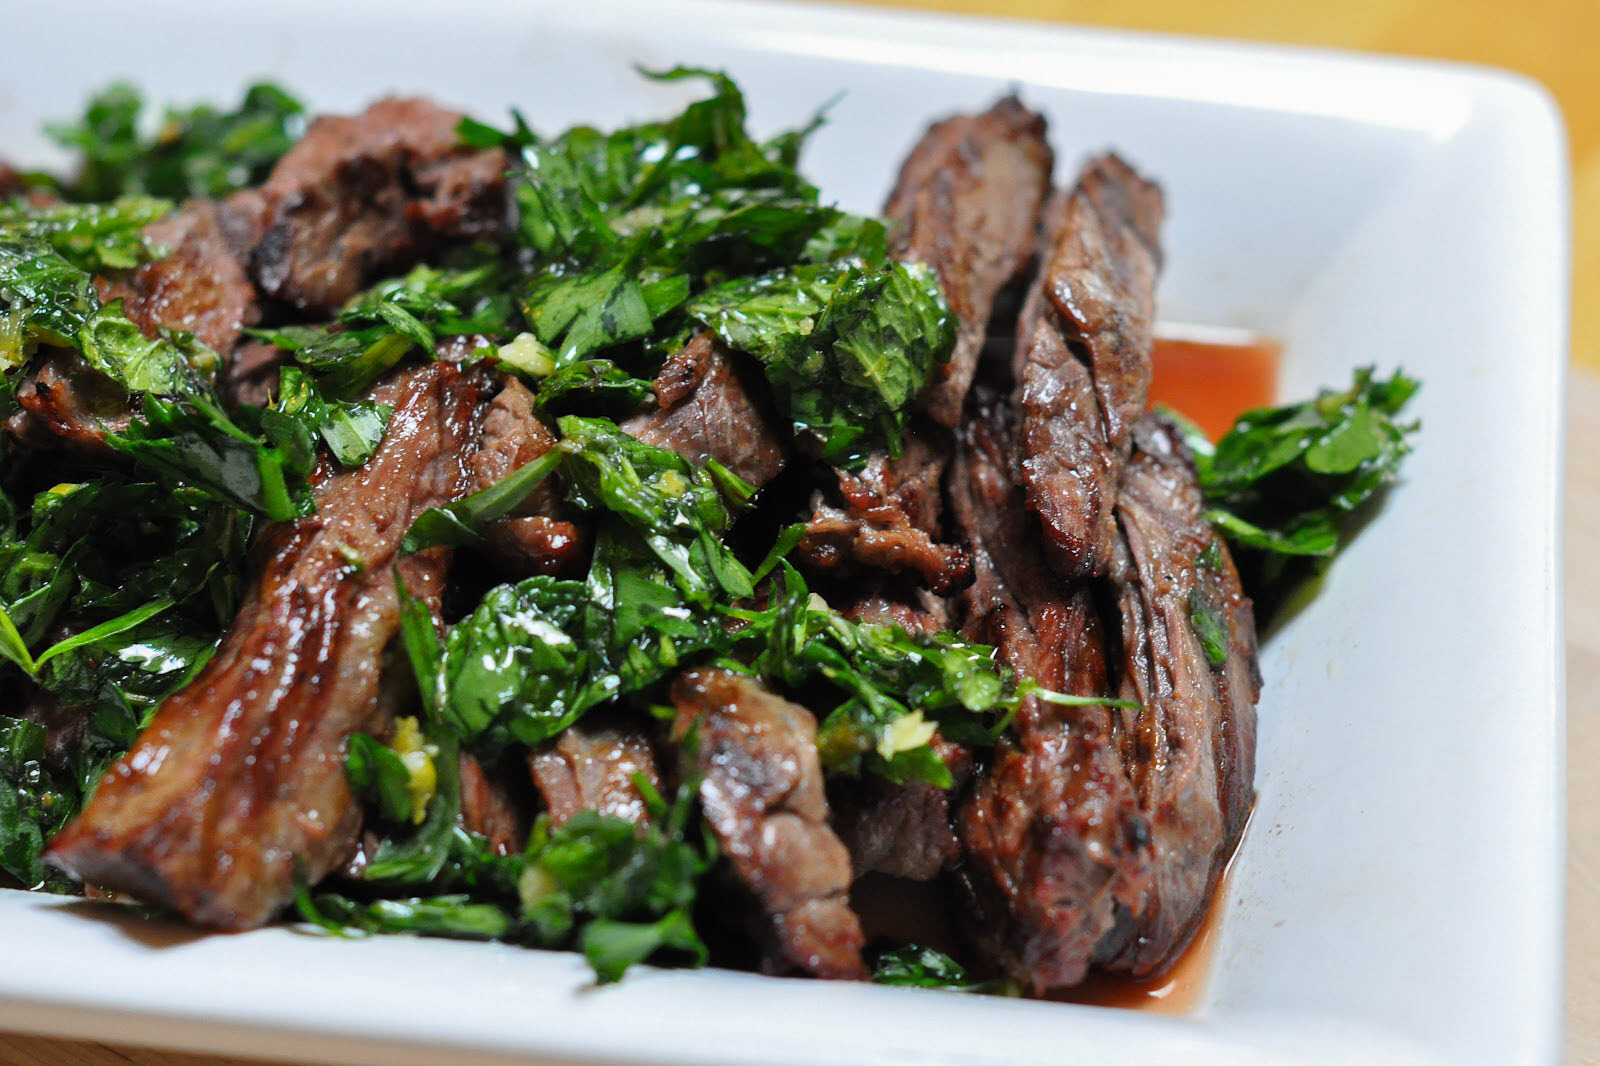 Grilled Skirt Steak with Herb Salsa Verde aphrodisiac foods for valentine's day